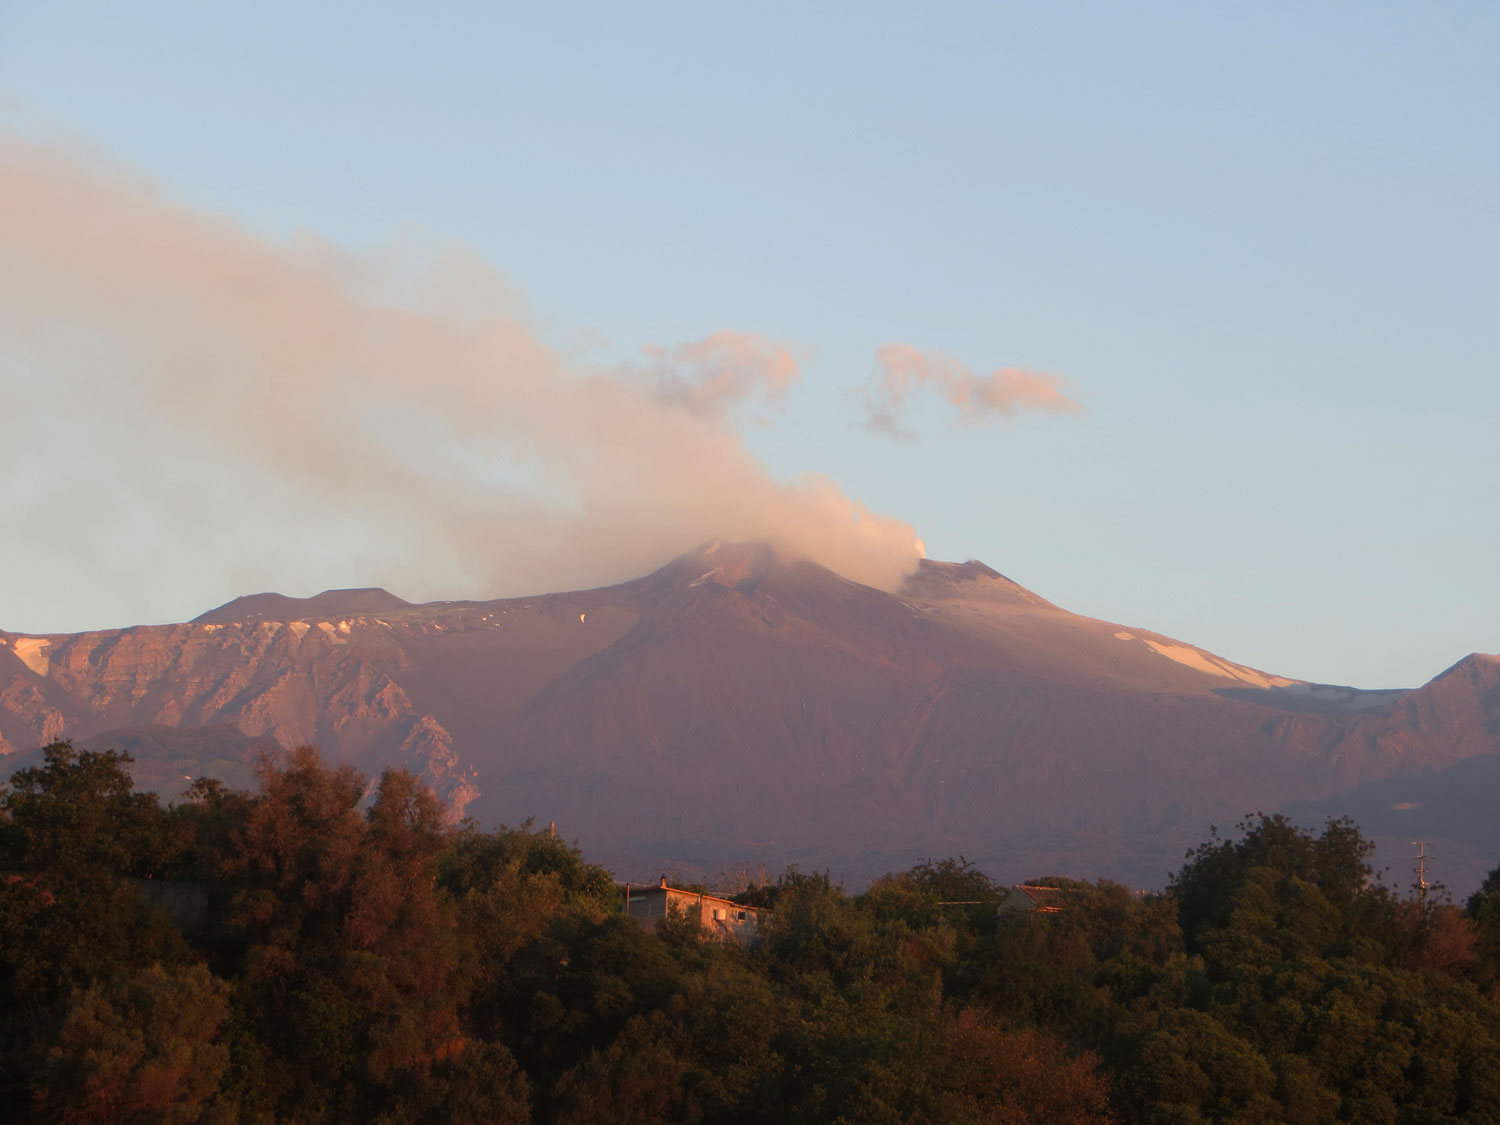 View of the Mount Etna (the morning after)